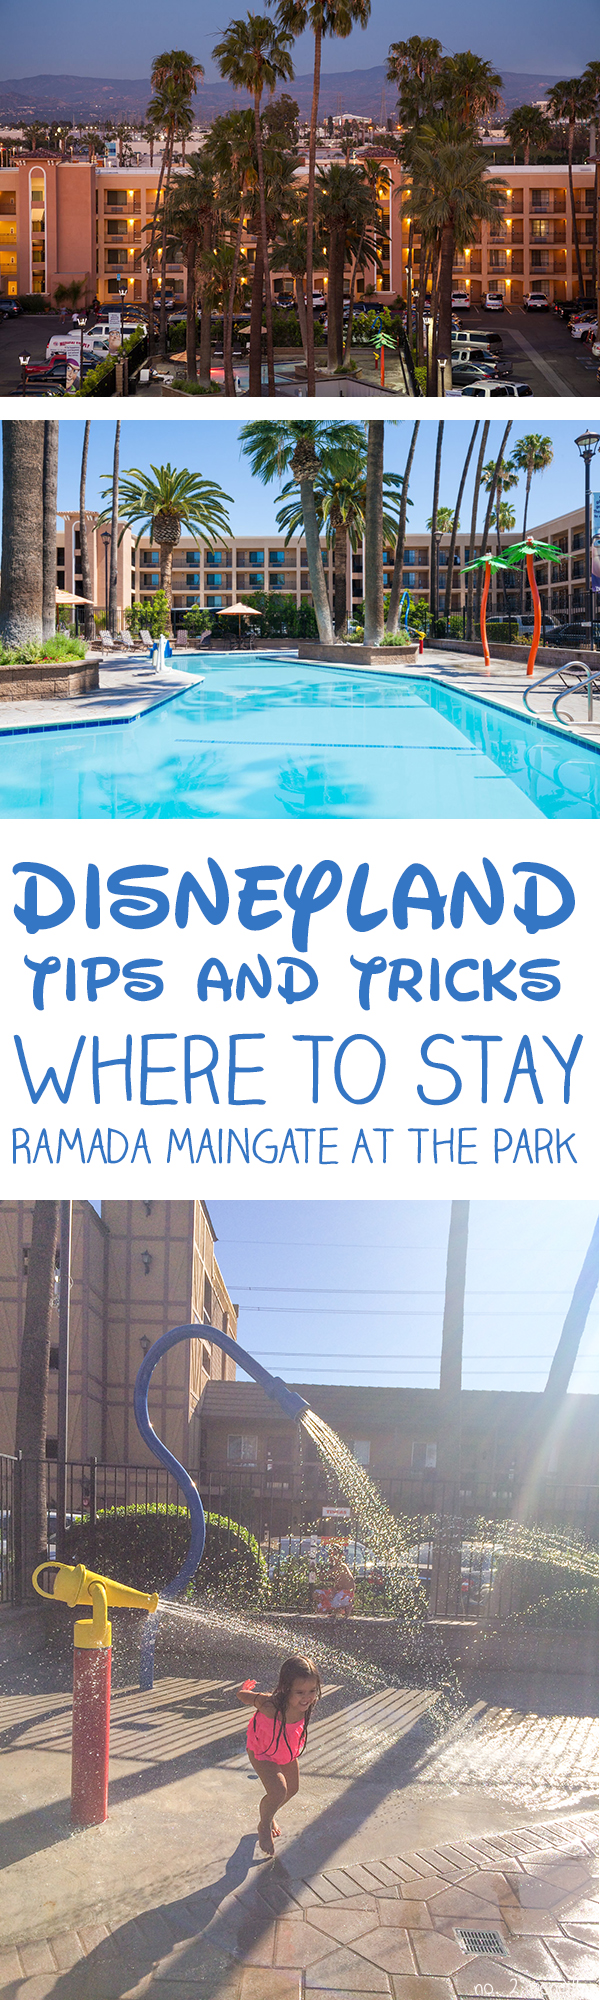 Disneyland Tips and Tricks - Ramada Maingate At The Park Hotel Review